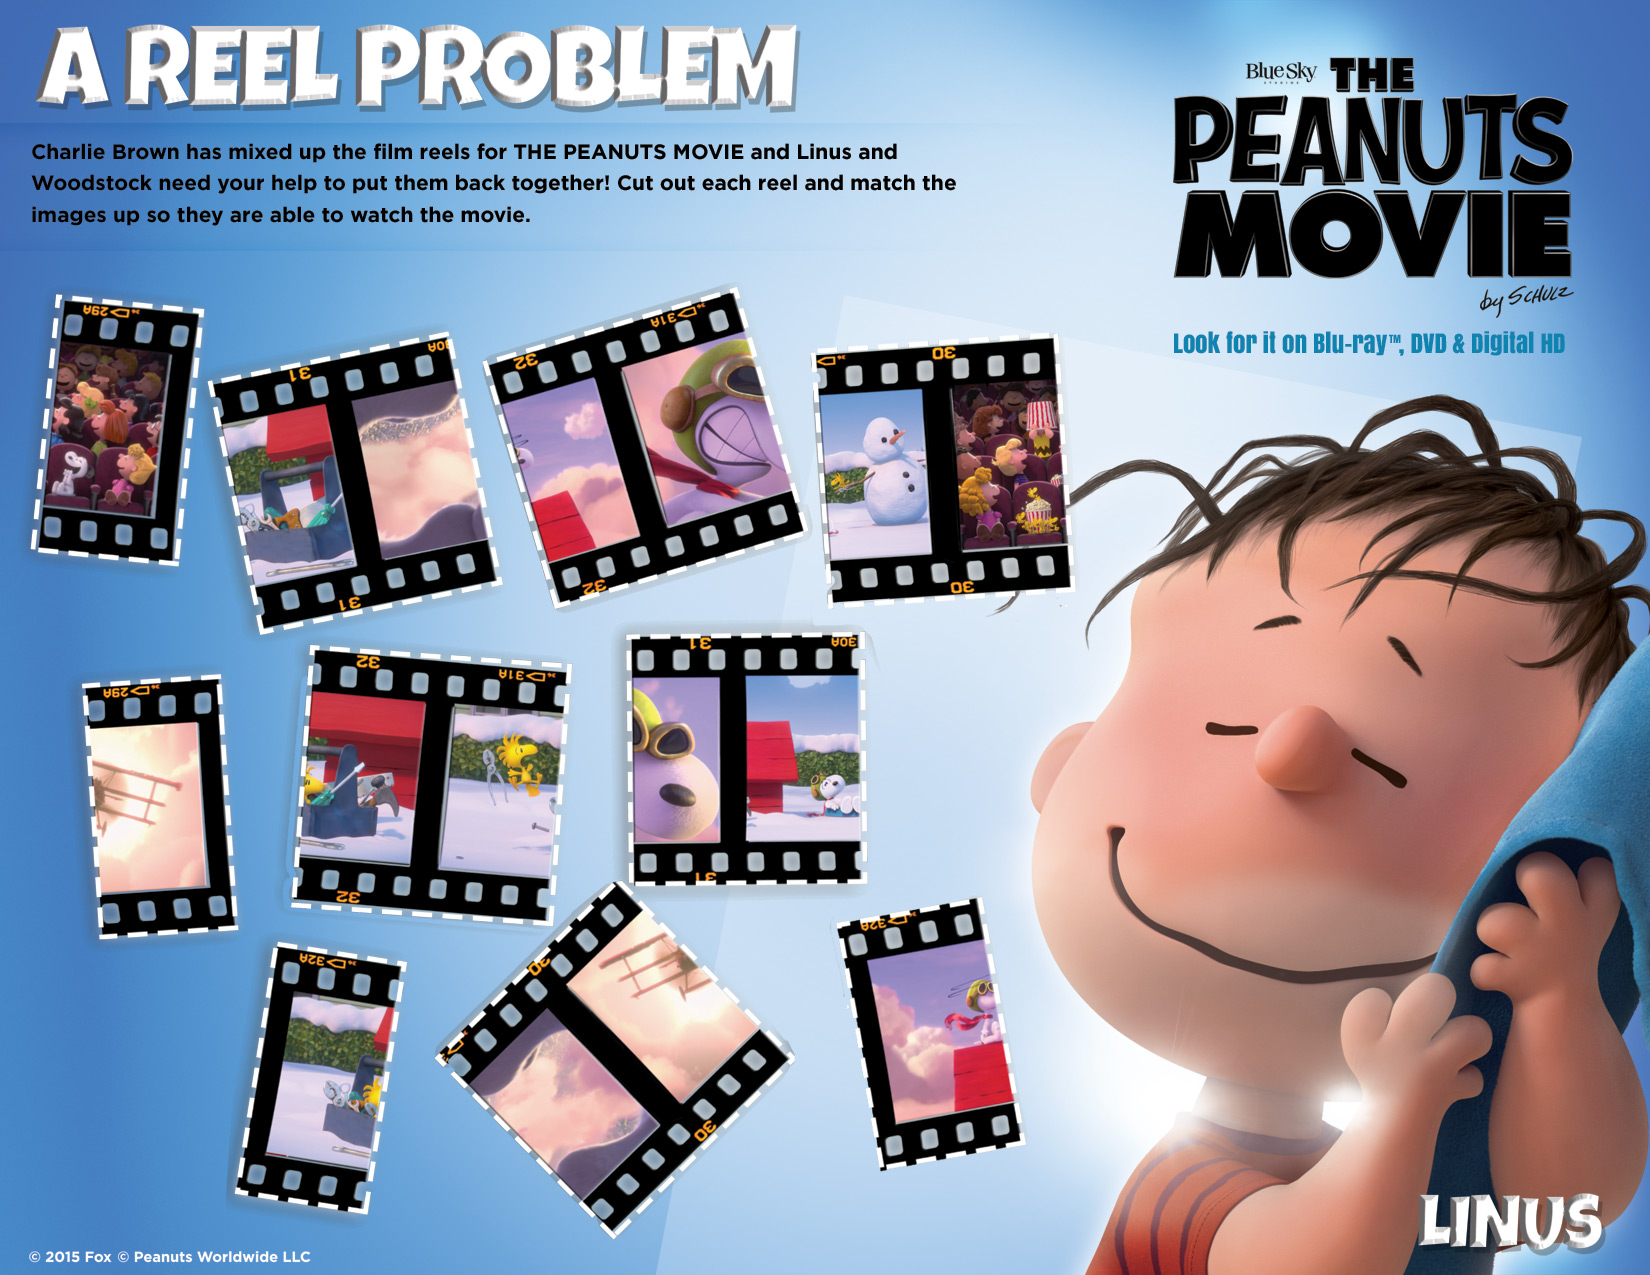 peanuts_toolkit_activities_reelproblem